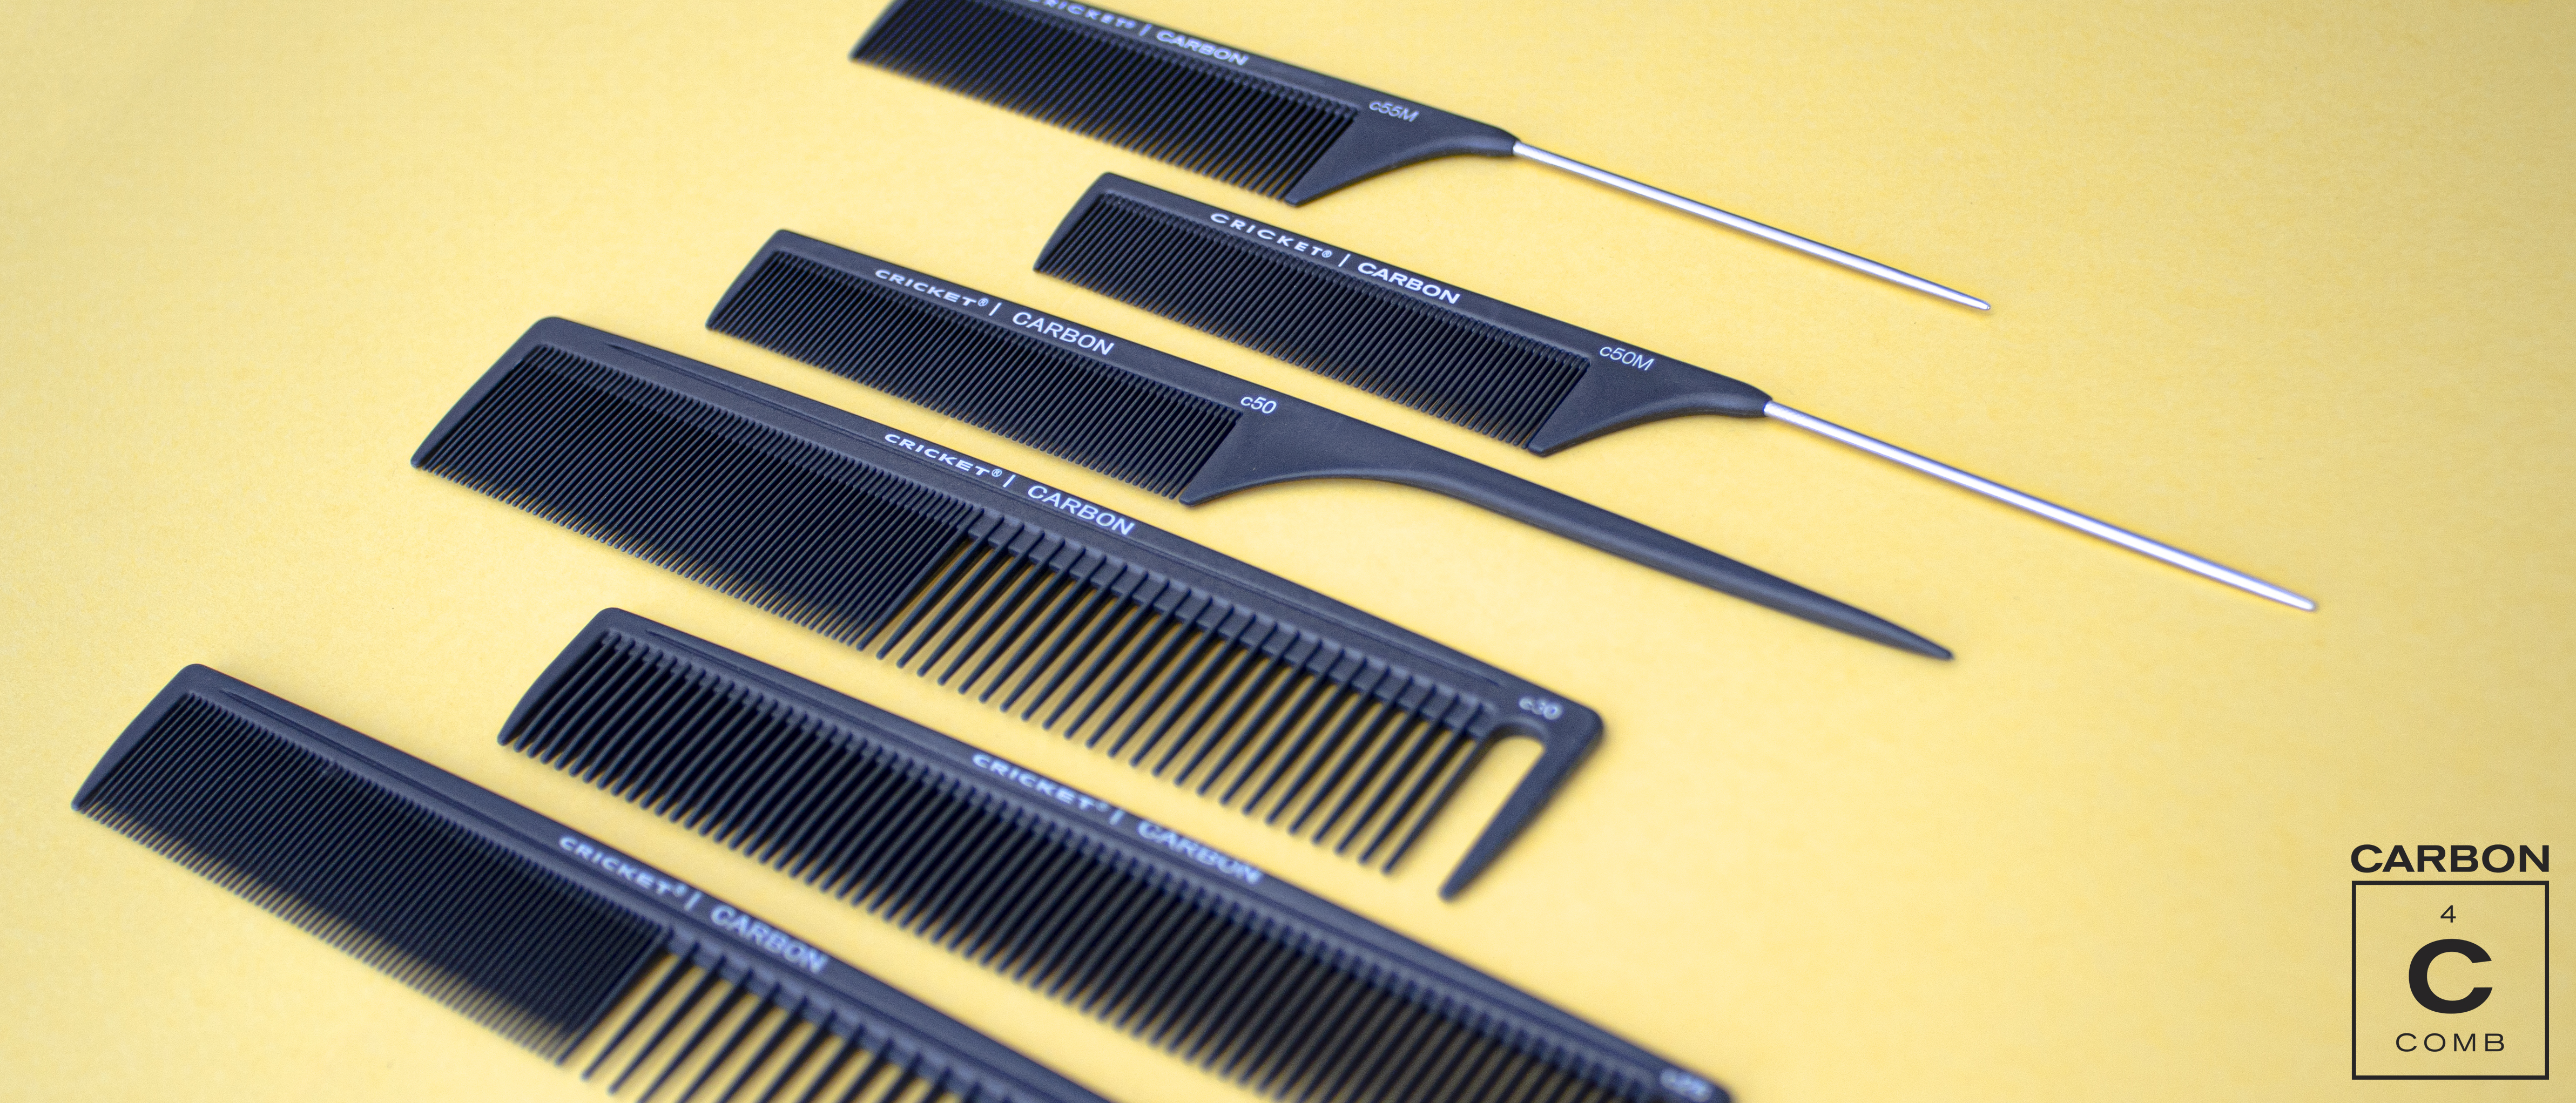 Cricket Carbon Combs Collection Strong and Can Handle High Heat